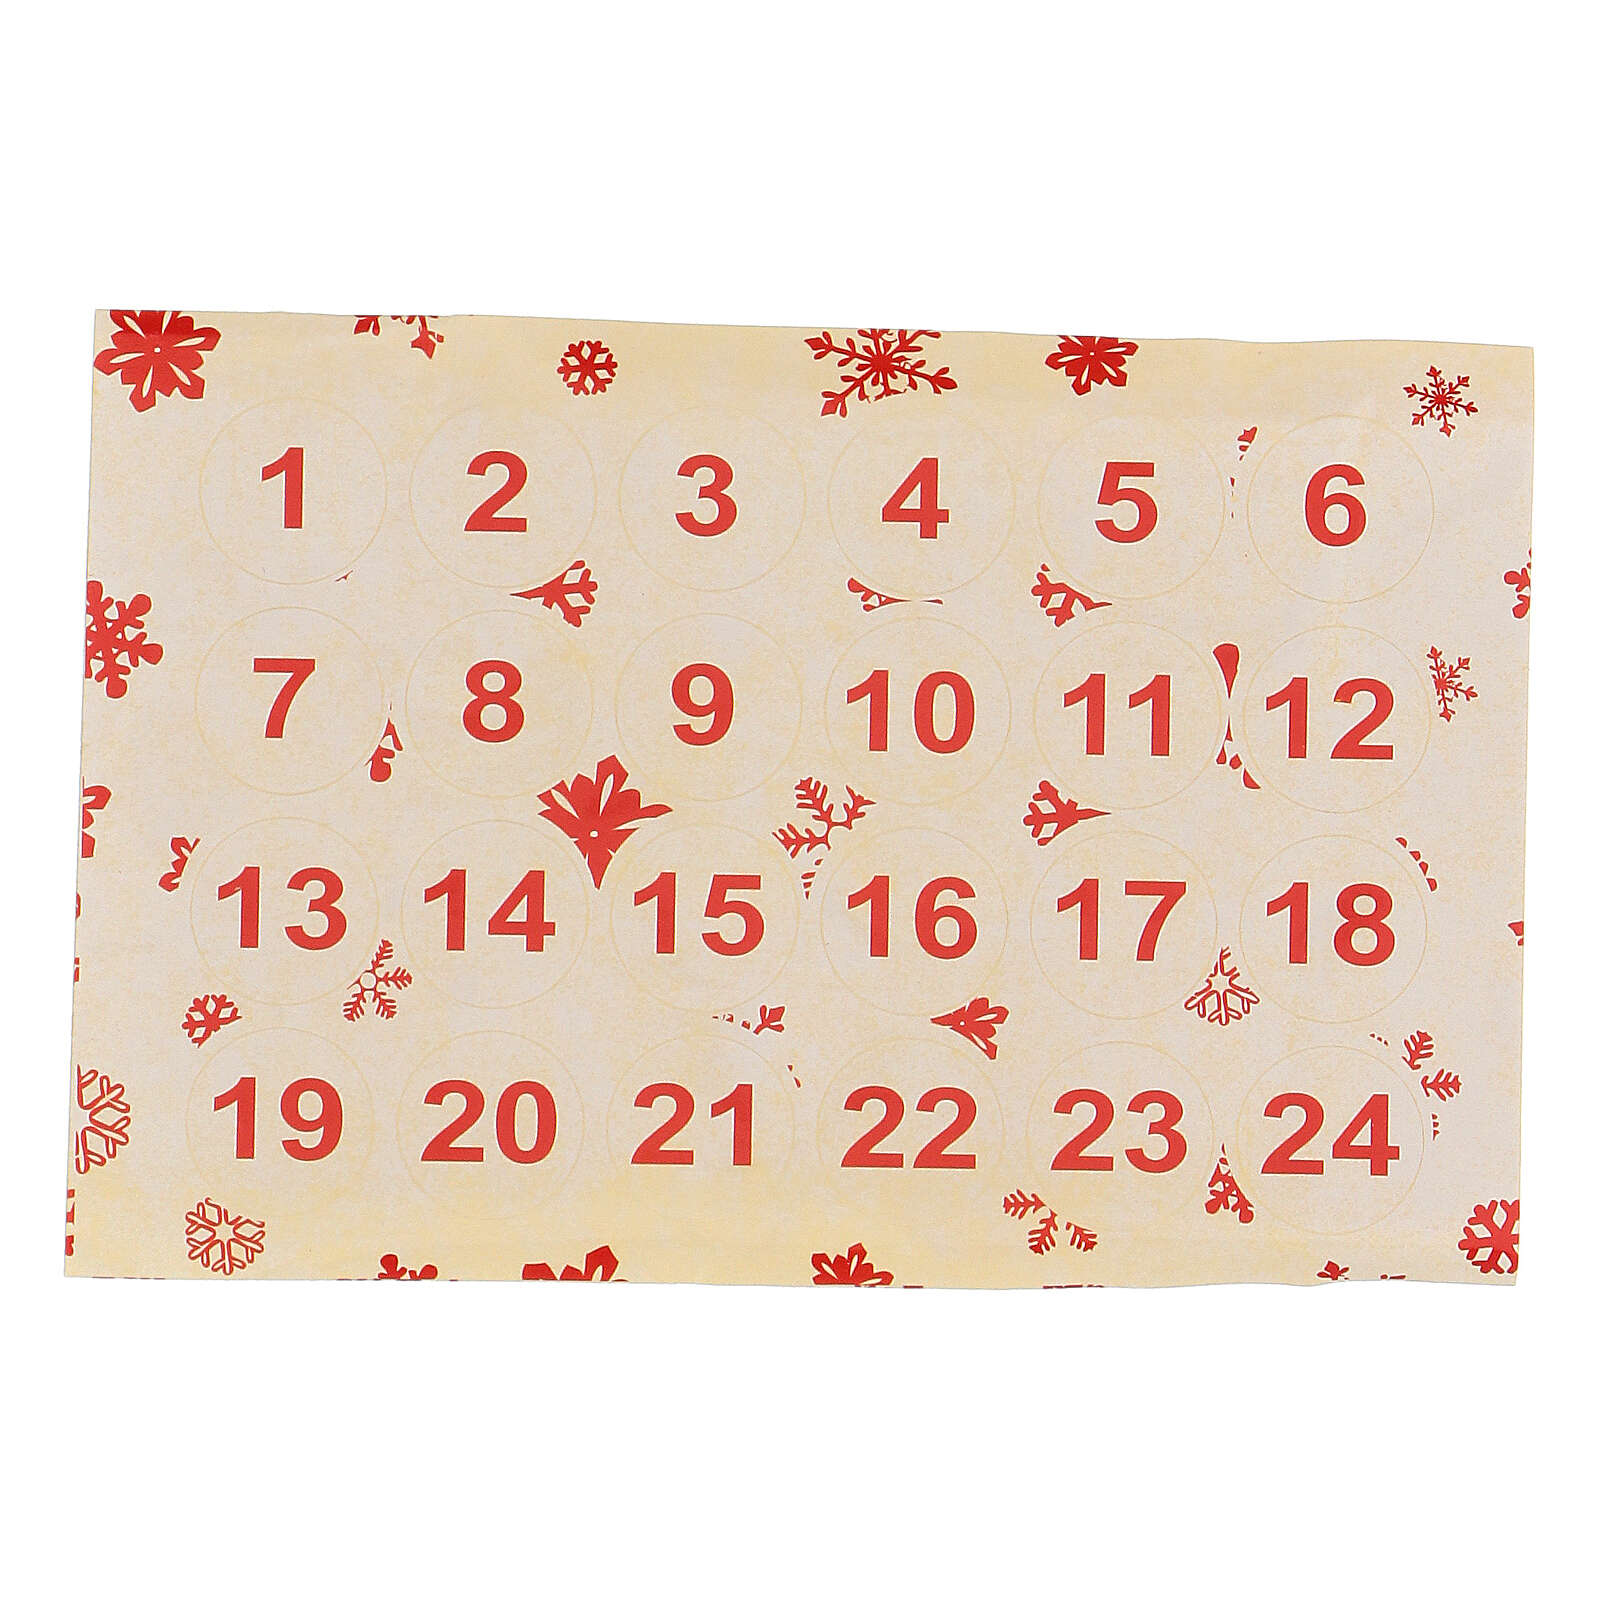 Advent Calendar bags and stickers 20x10 cm 3